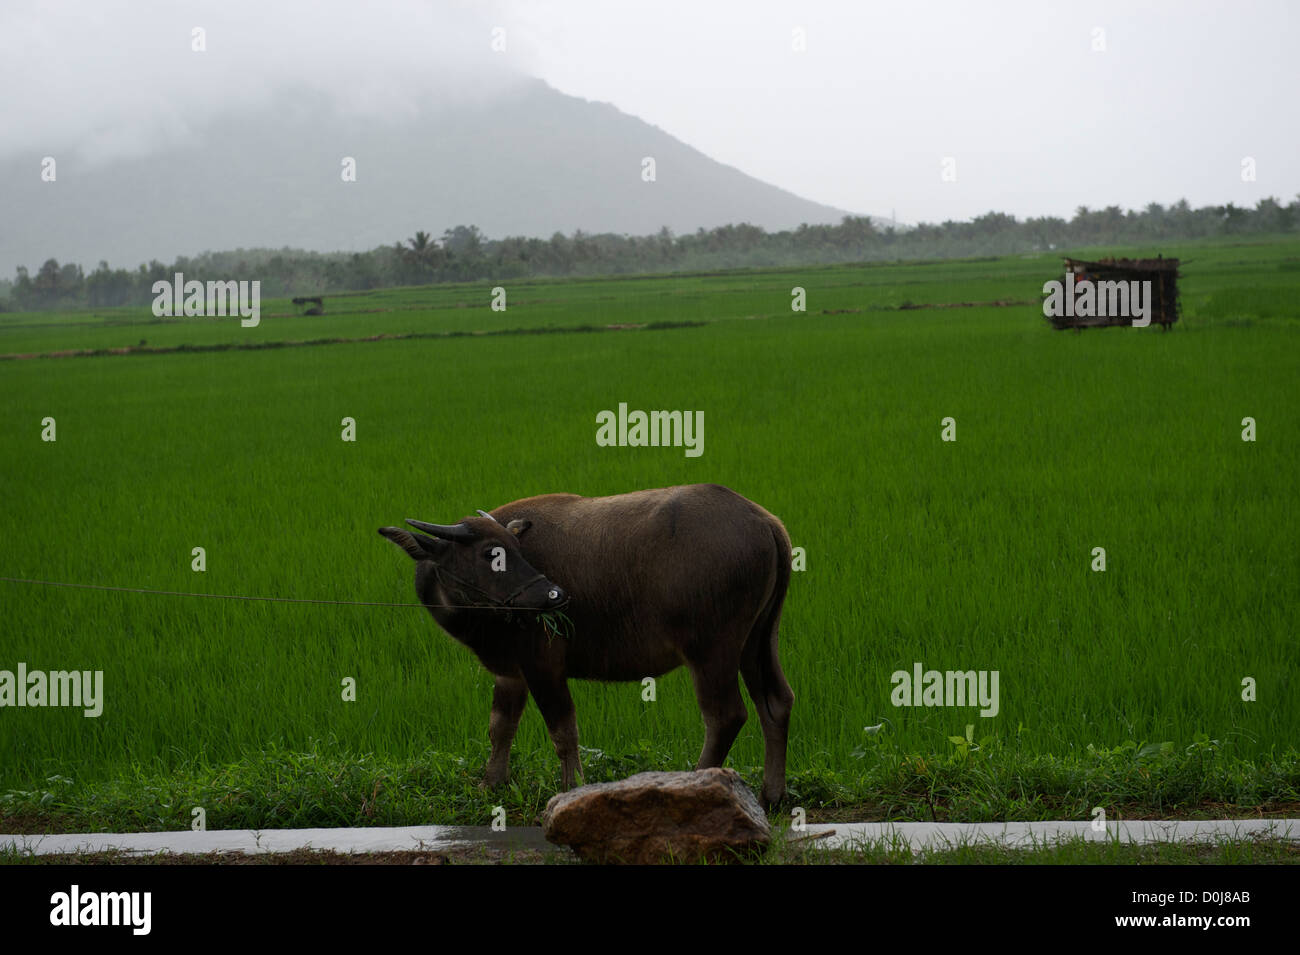 A water buffalo eating grass alongside the paddy fields in Sanya, Hainan province, China. 11-Aug-2008 - Stock Image